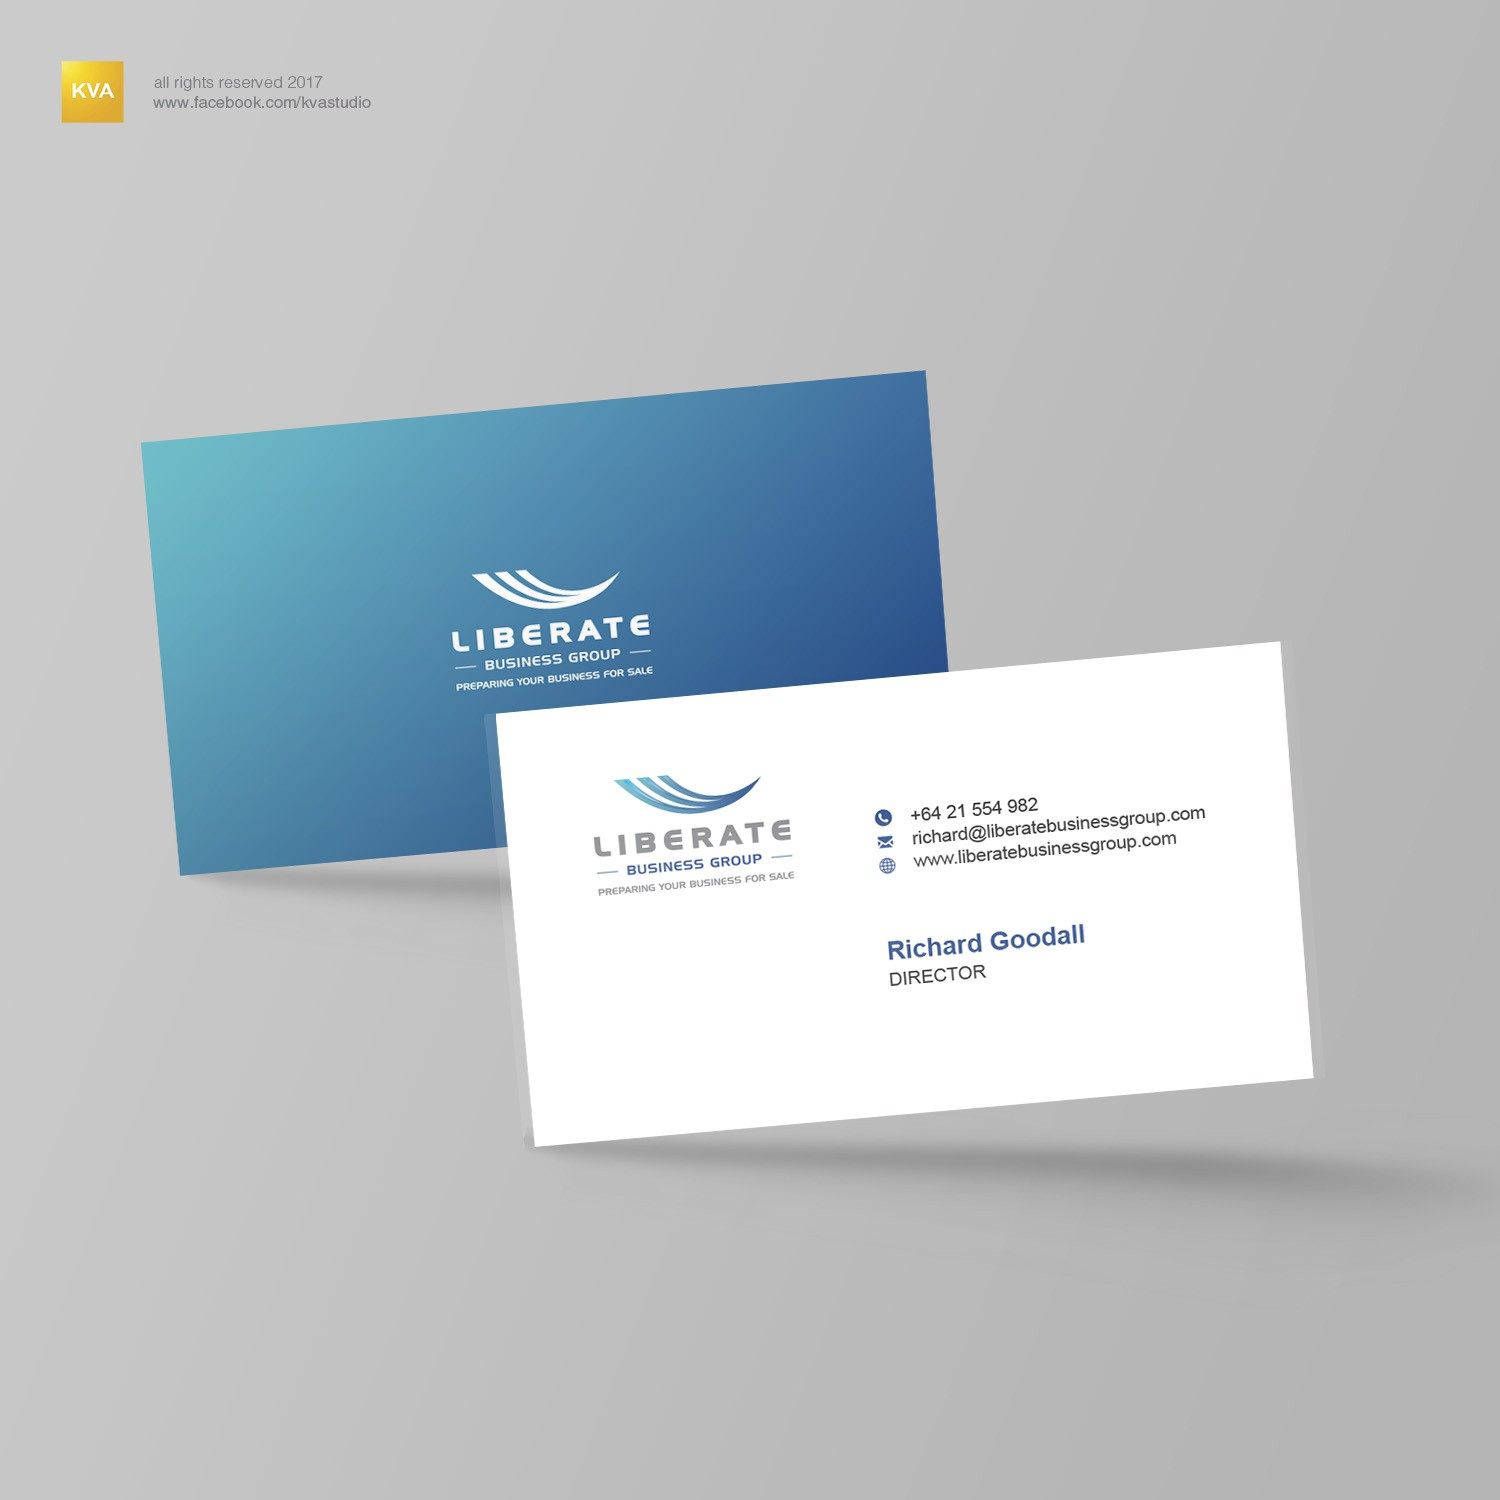 Liberate business cards